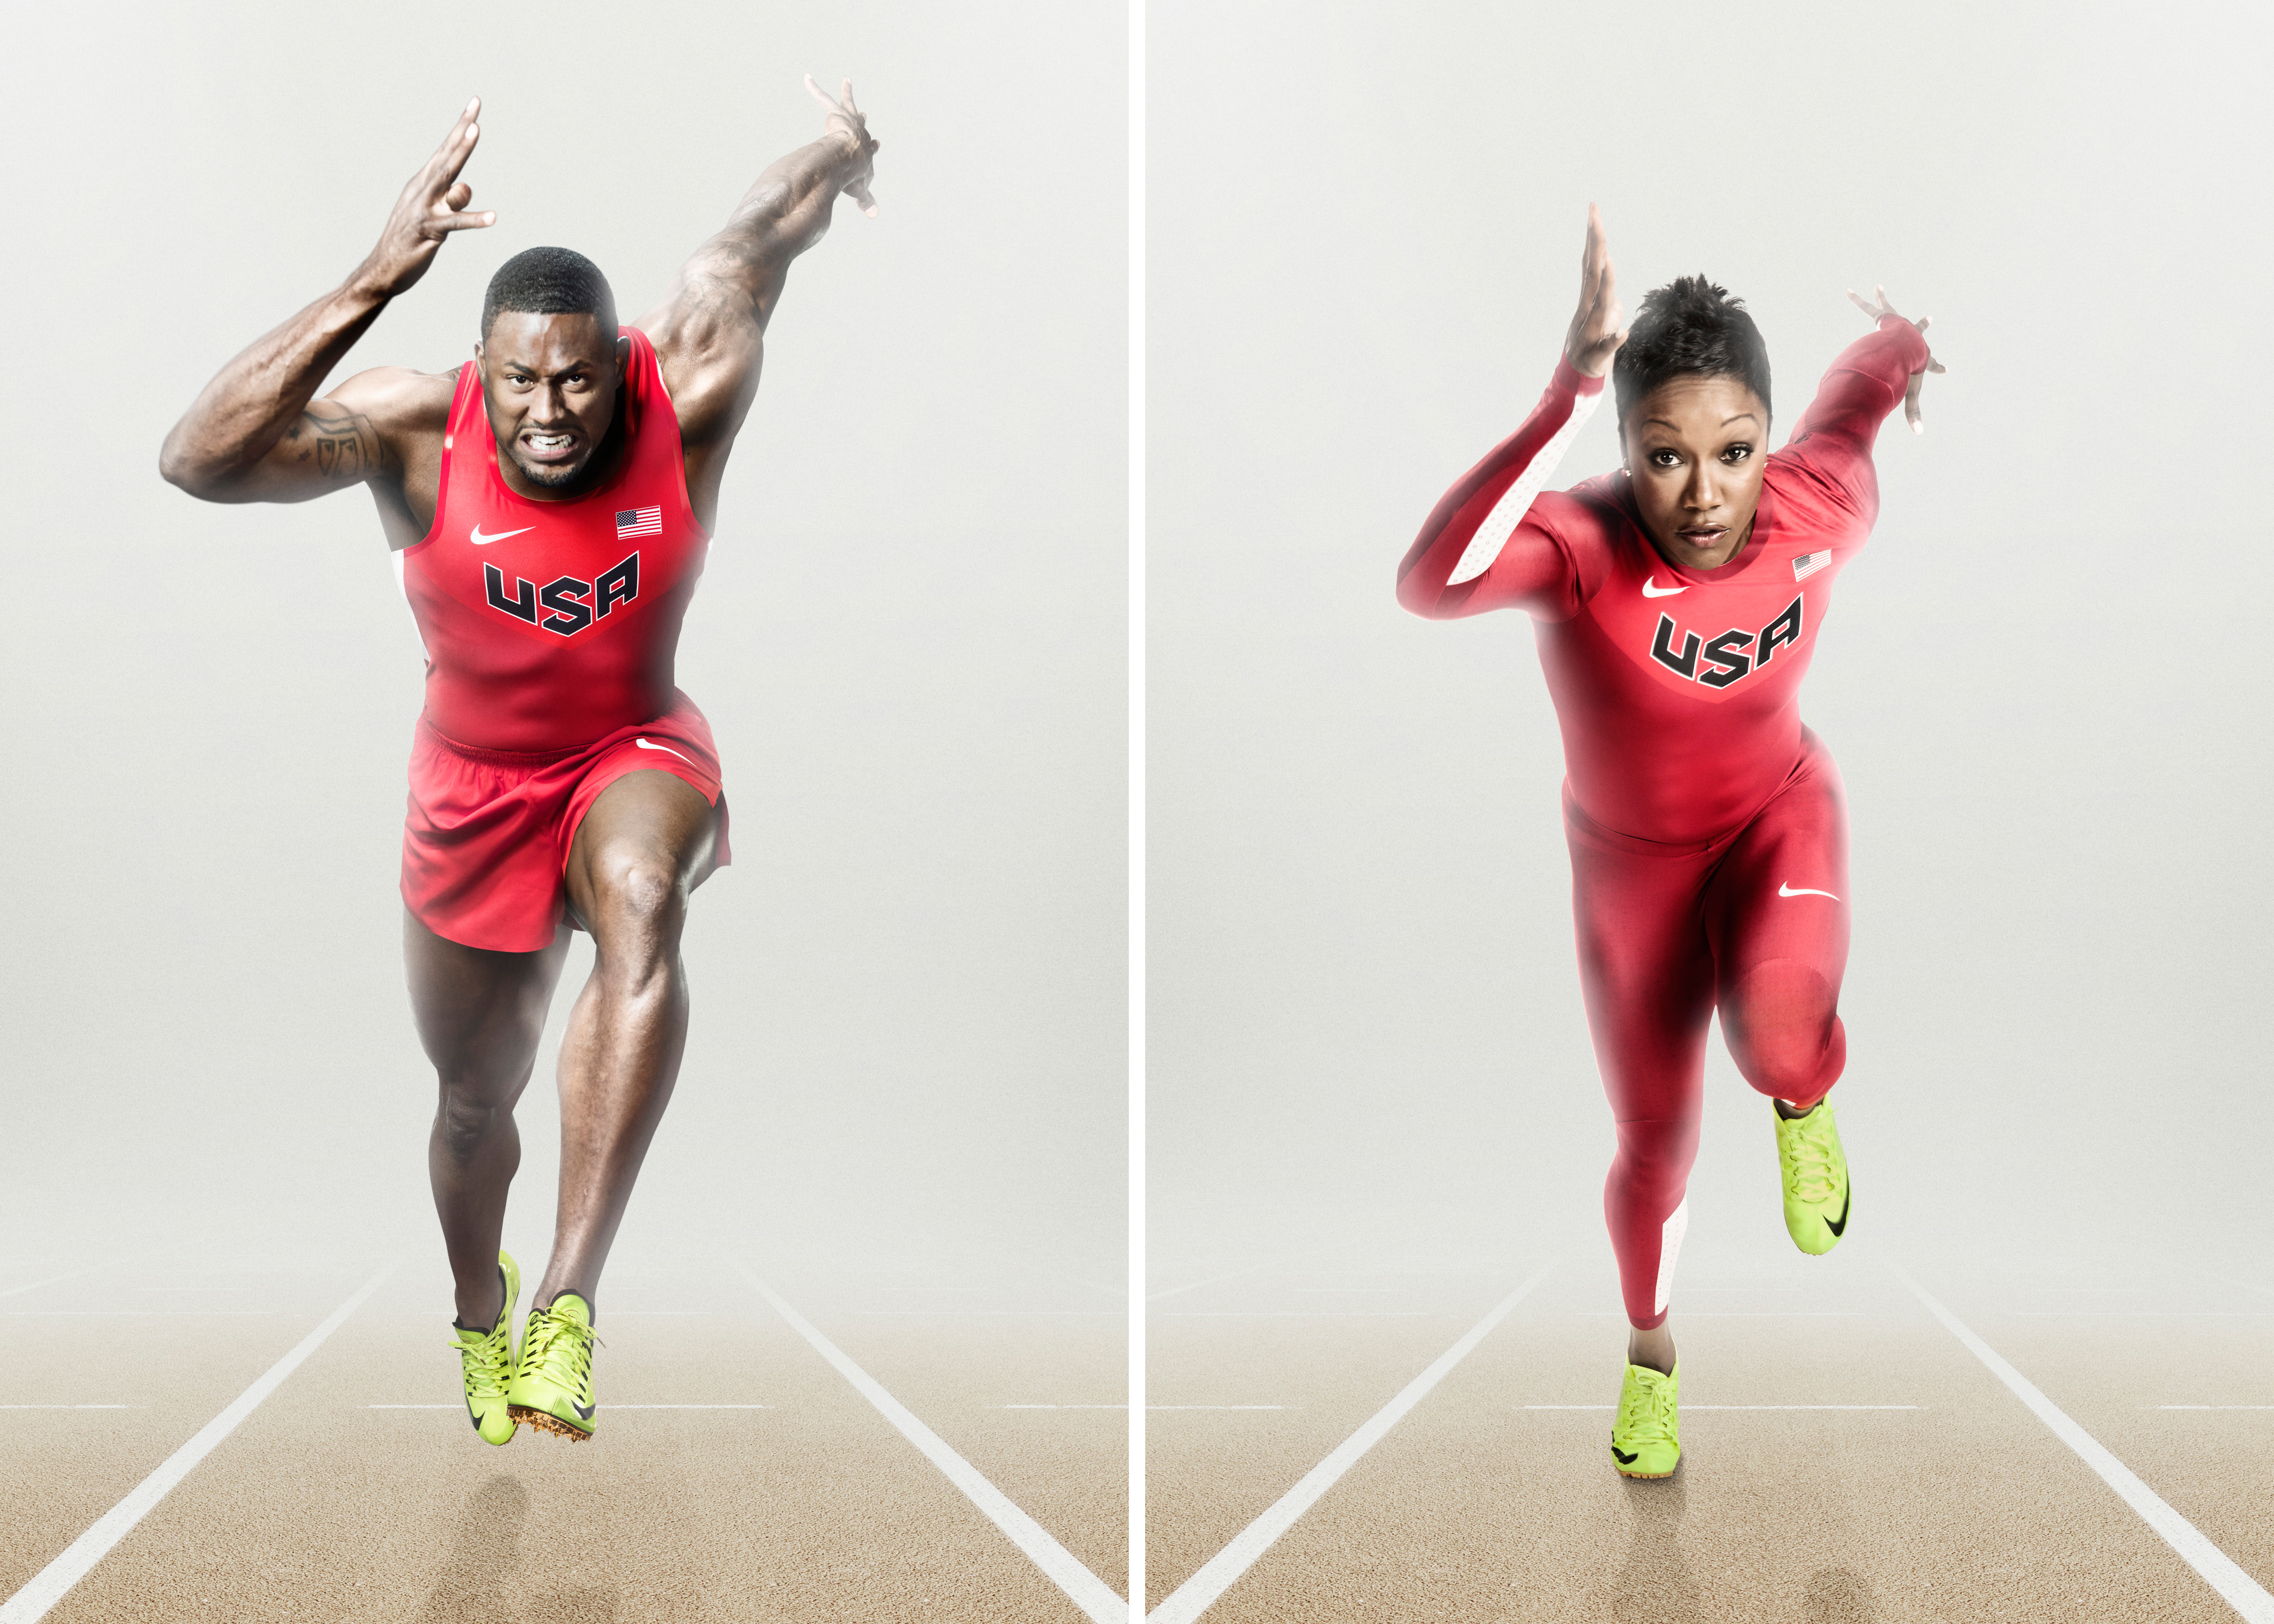 latest nike shoes design for women 2012 olympic gymnastics women